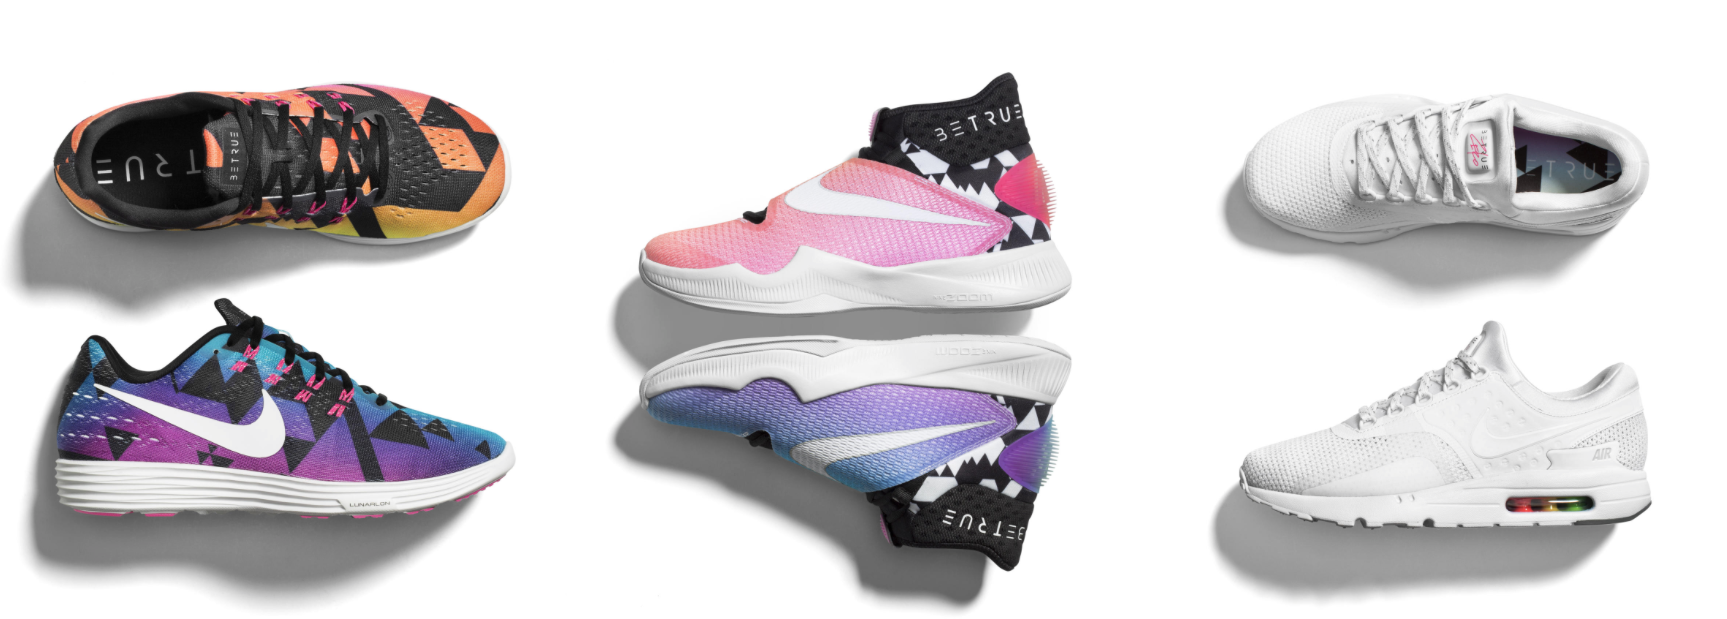 new style 11f1c 64849 The 2016 Nike Be True Collection Is Now Available